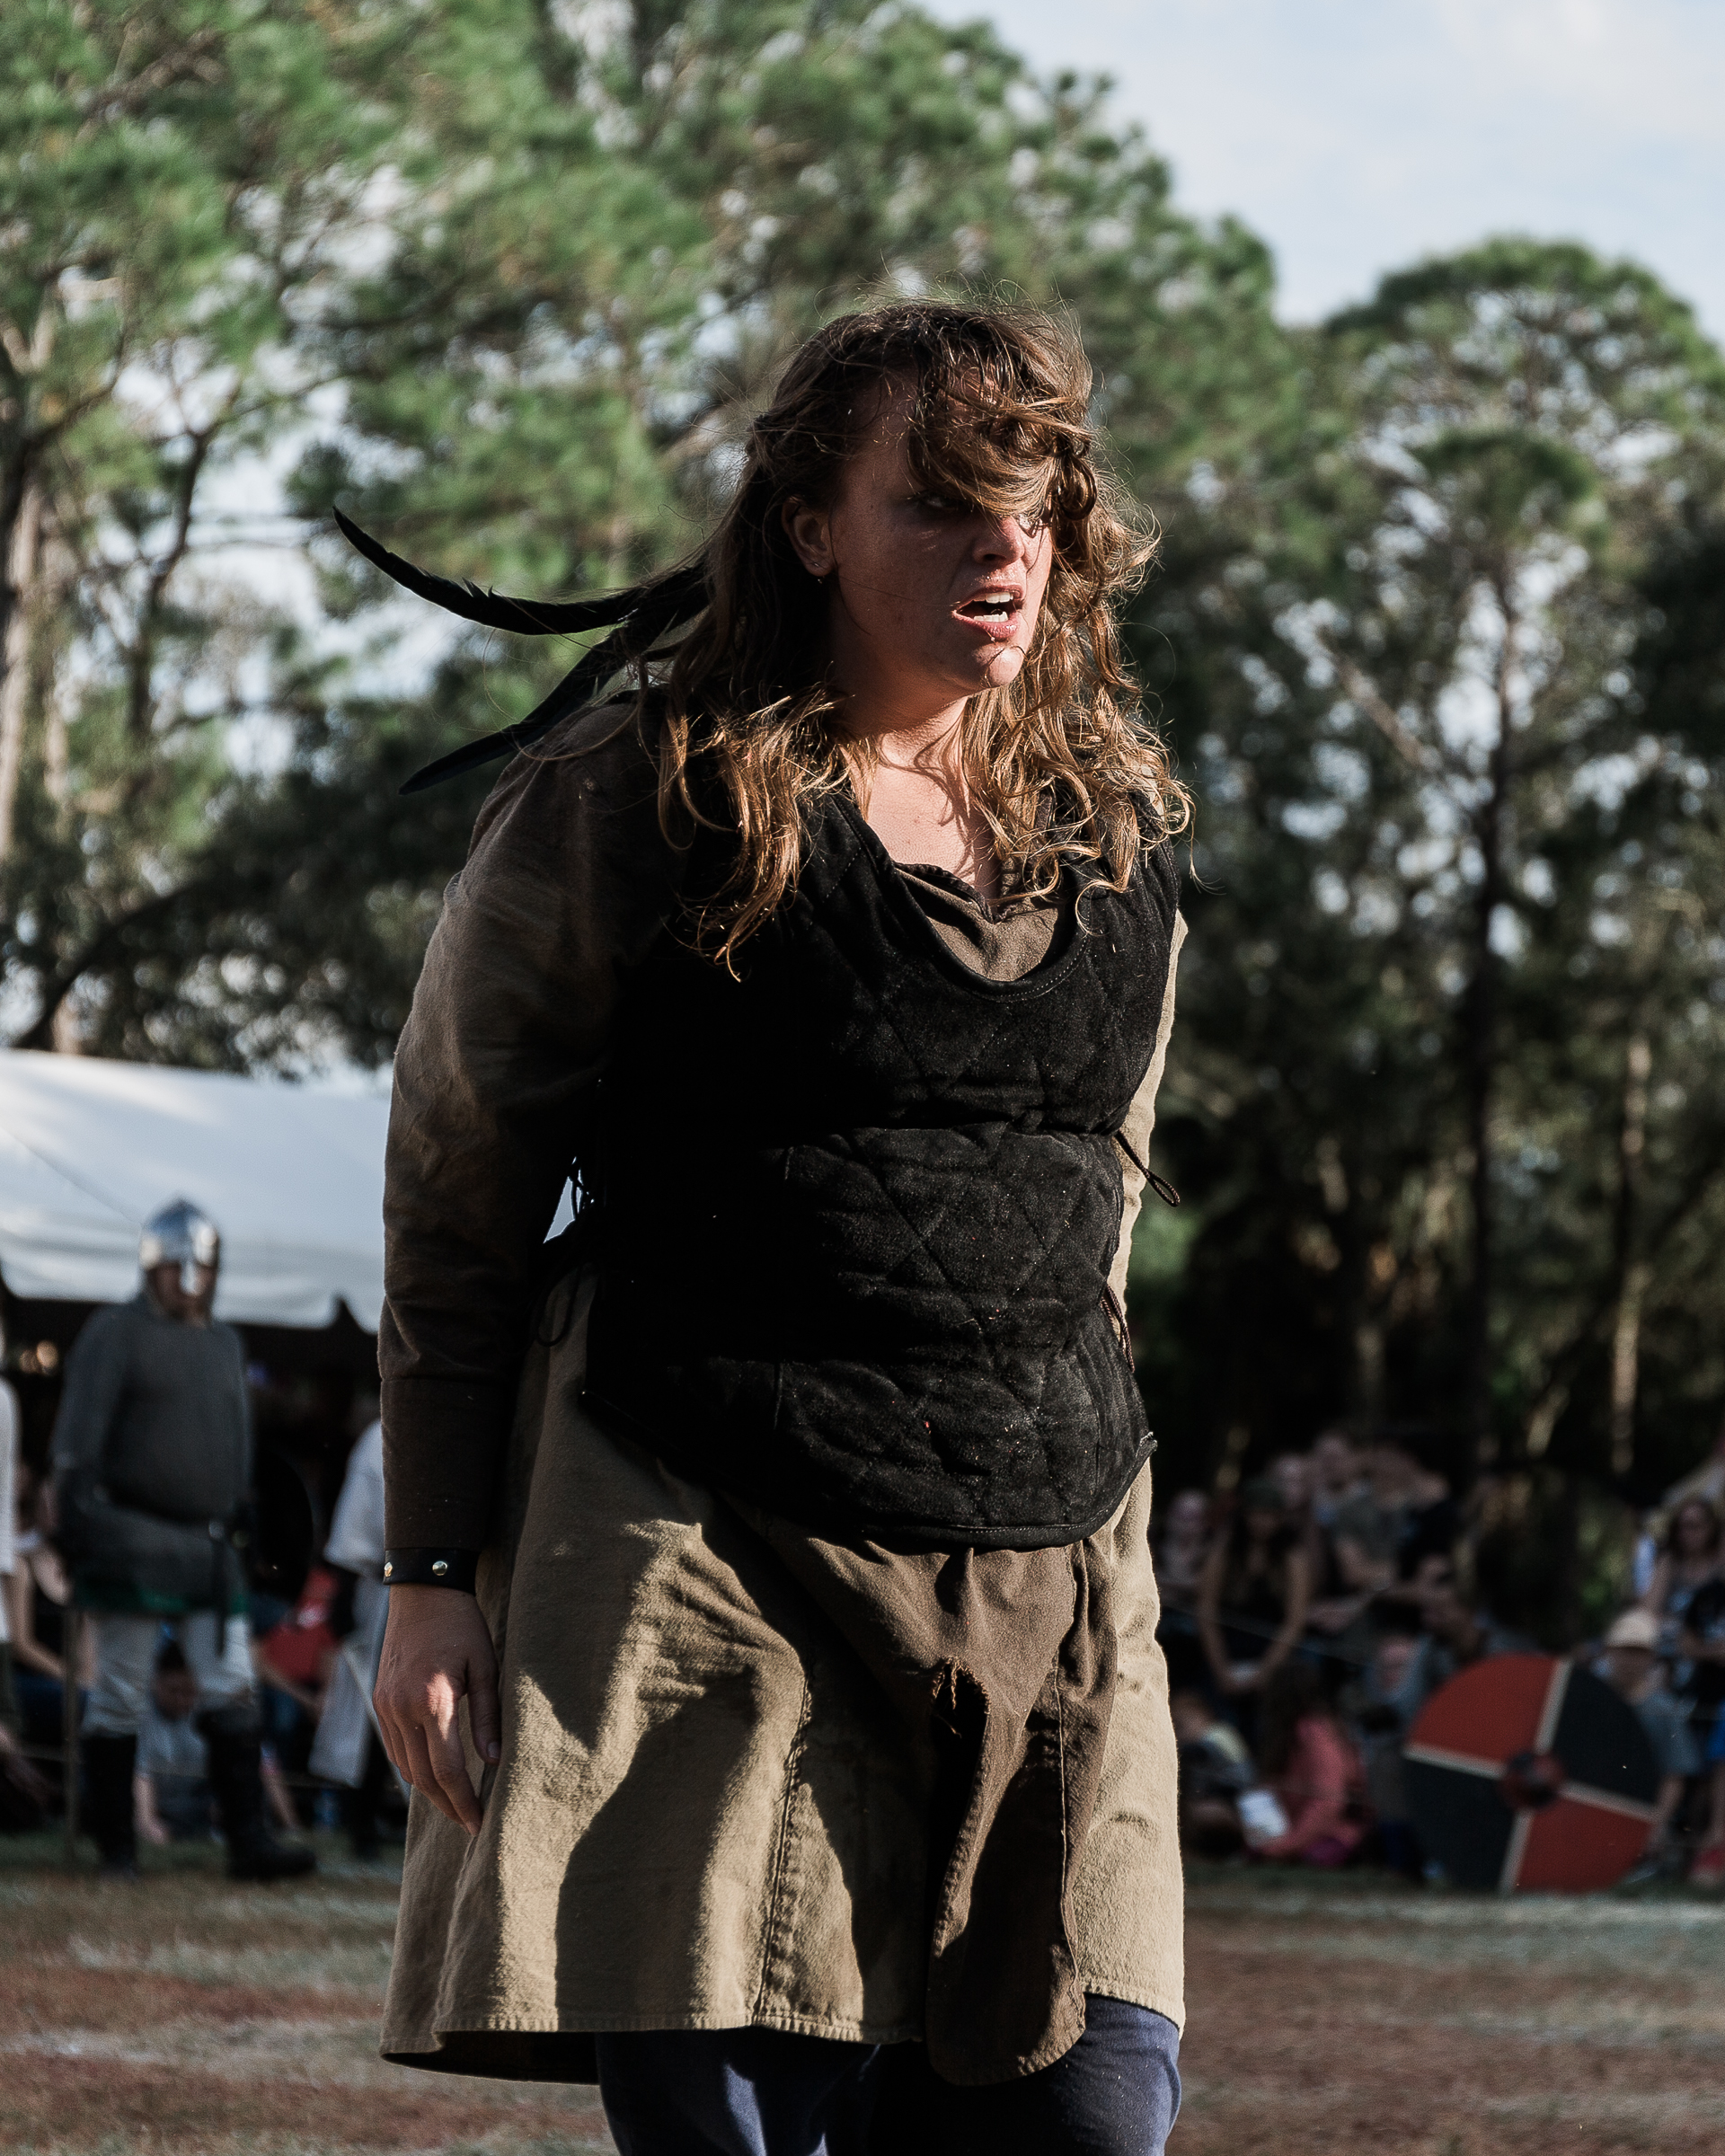 20181118_Sarasota Medieval Fair_ © Madison Greer Photography_1874.jpg